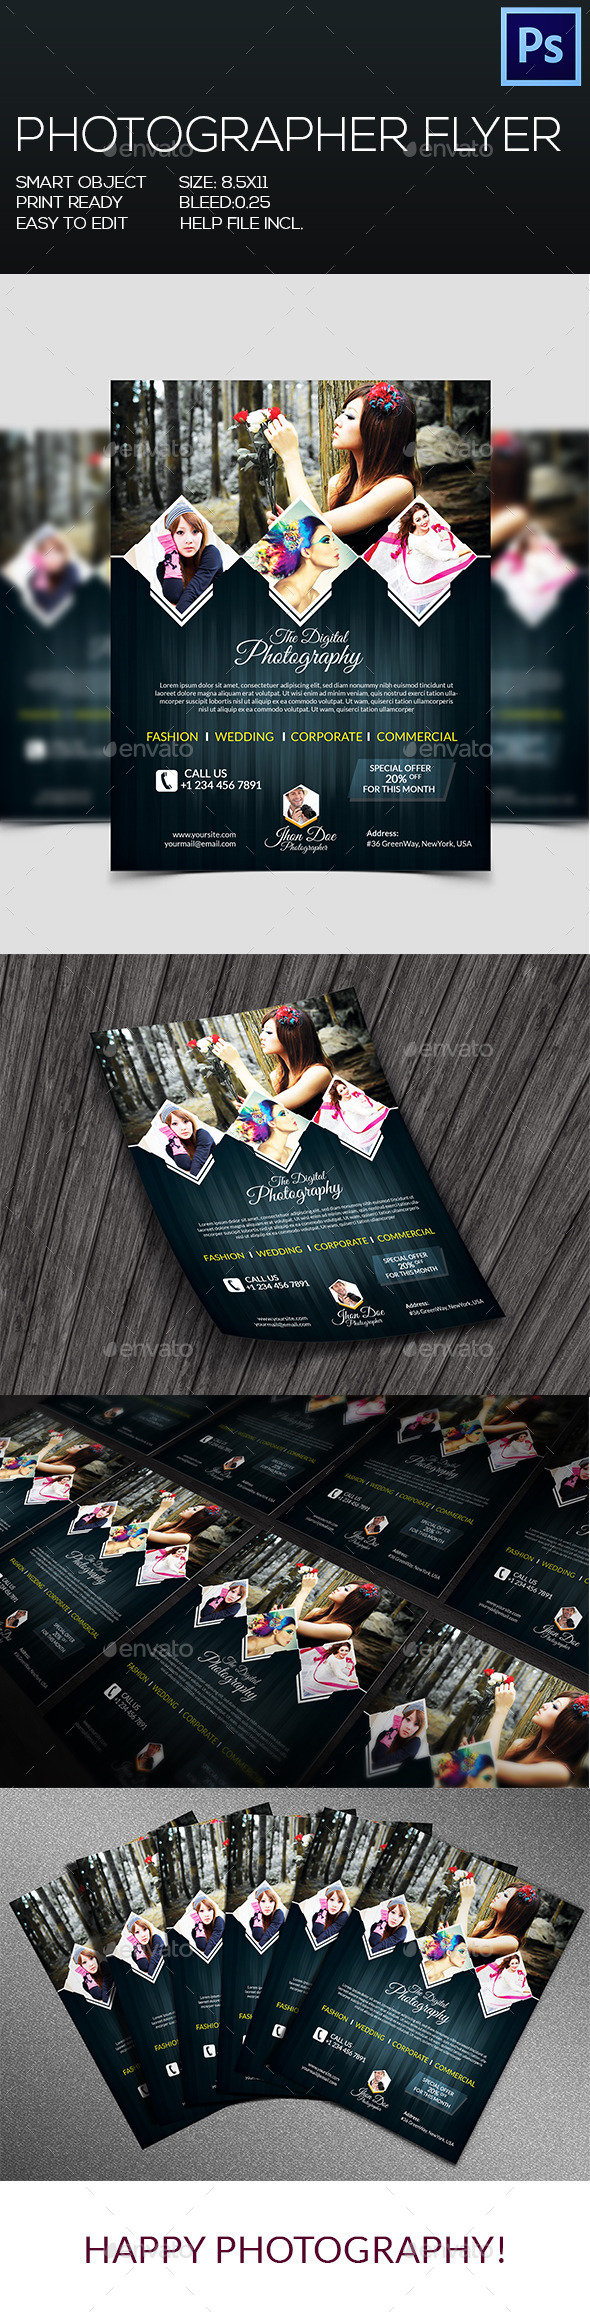 Photographer Flyer V-2 - Corporate Flyers